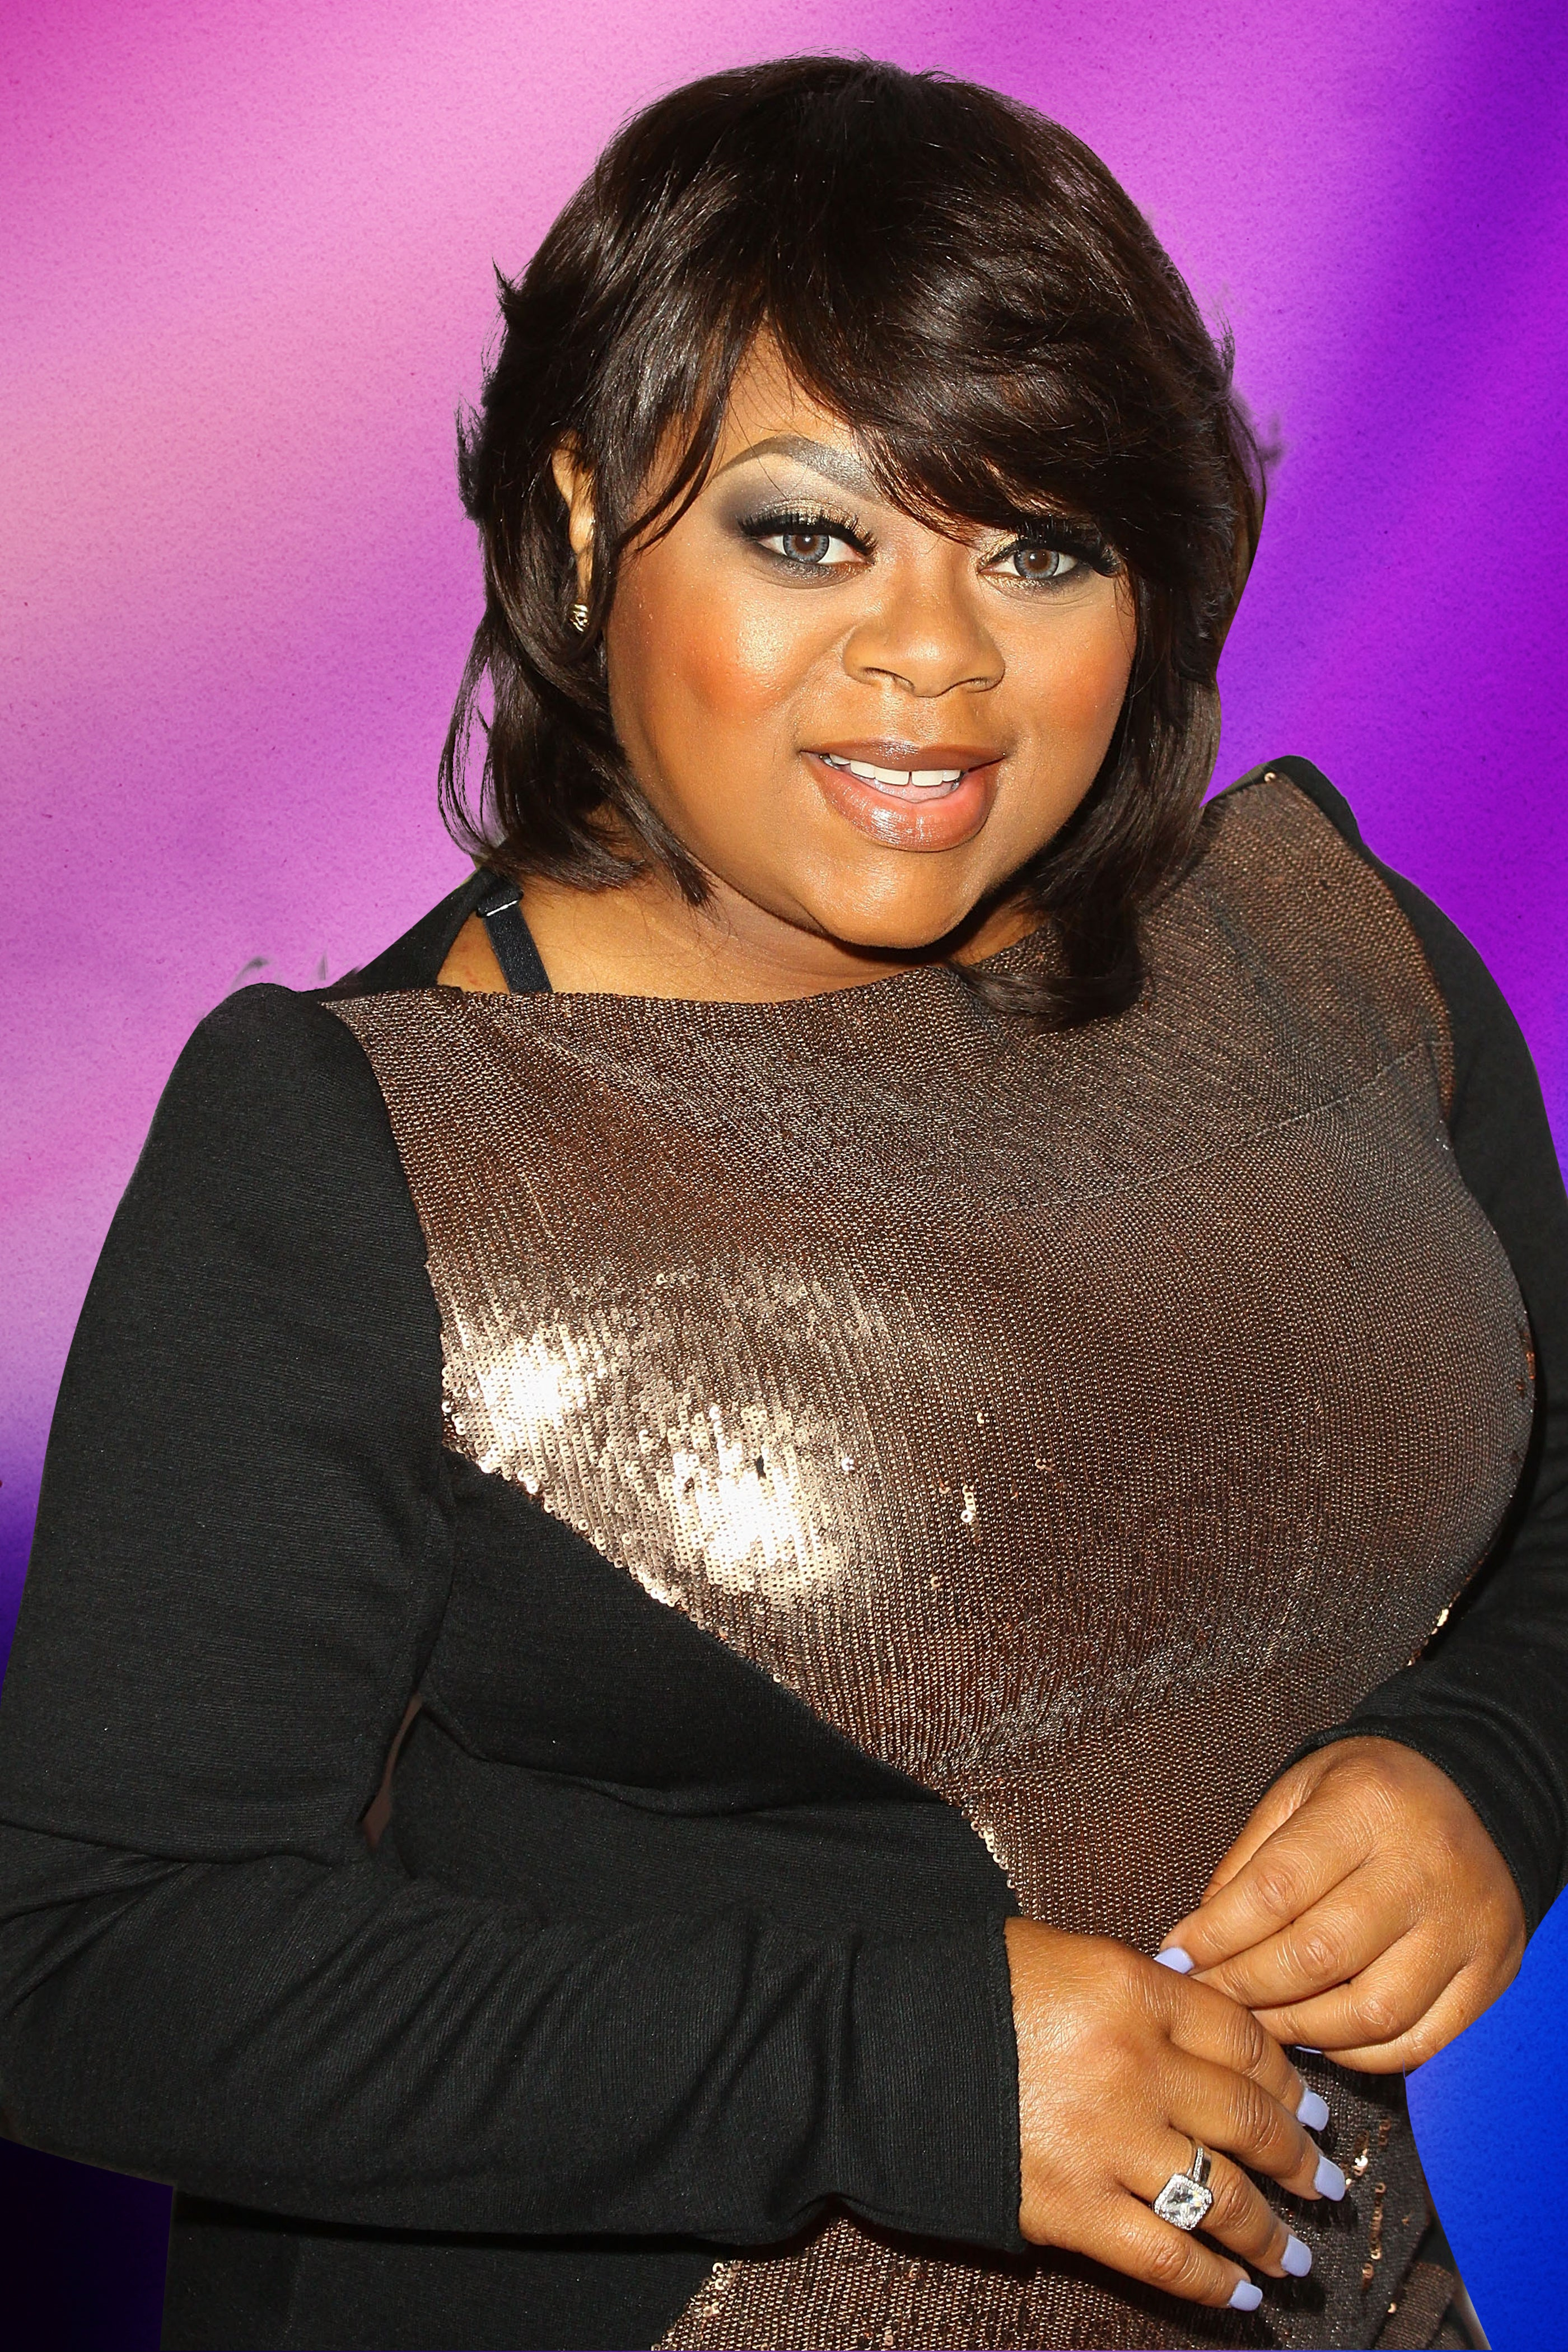 Discussion on this topic: Jean Calhoun, countess-vaughn/